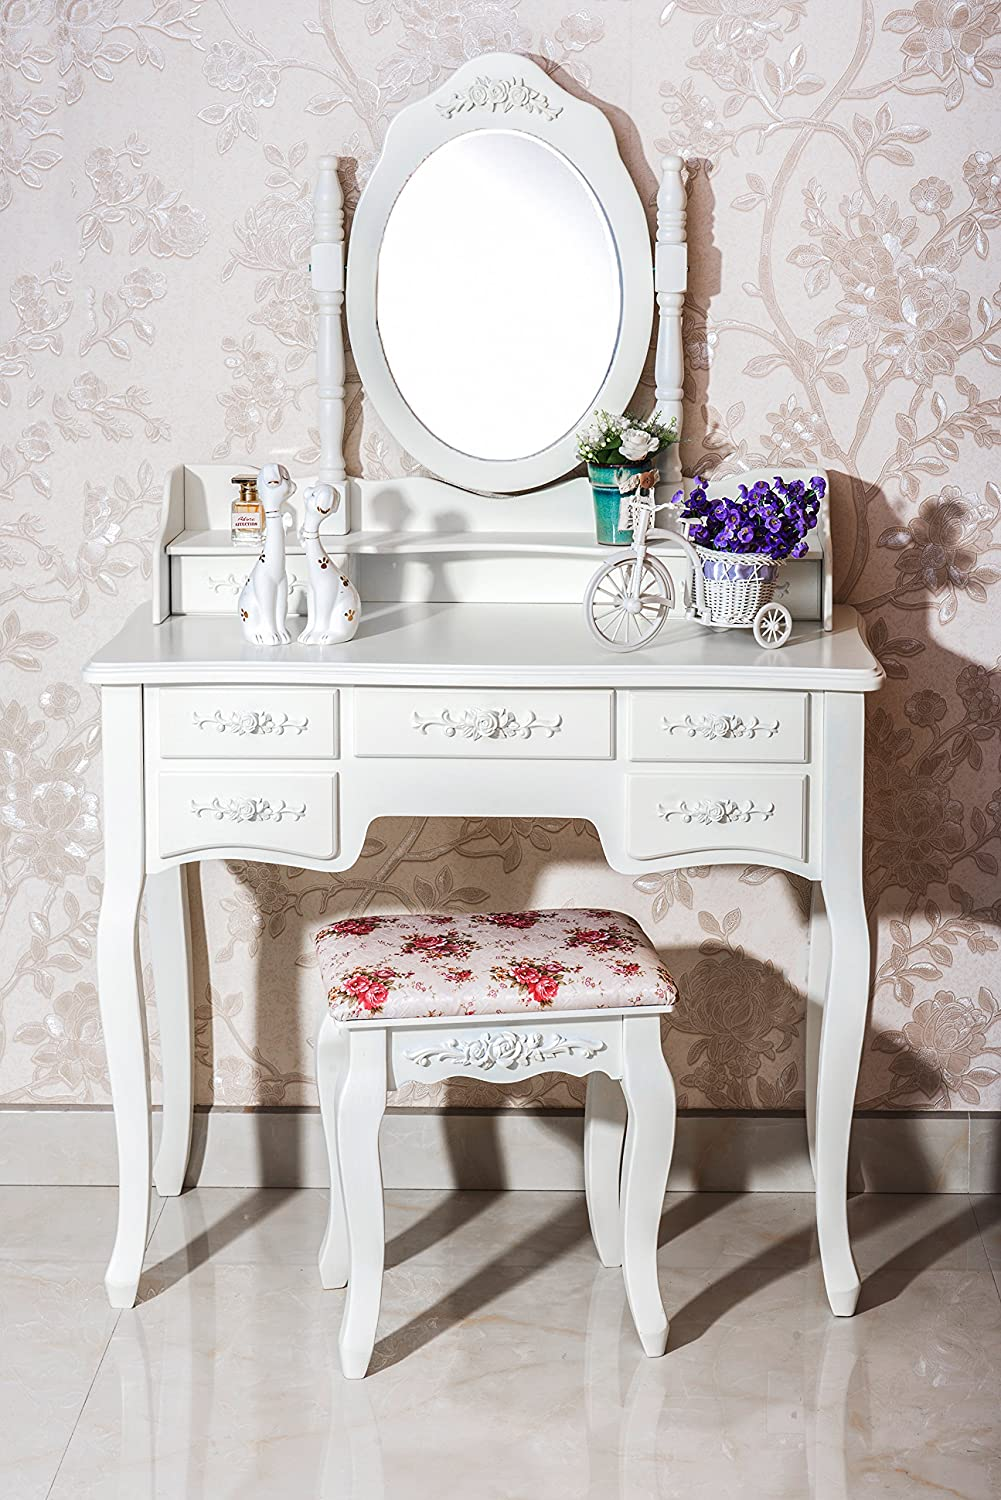 Dresser with mirror and chair - Amazon Com Beautiful White Label Cleopatra Vintage Vanity Table 7 Drawer Kitchen Dining